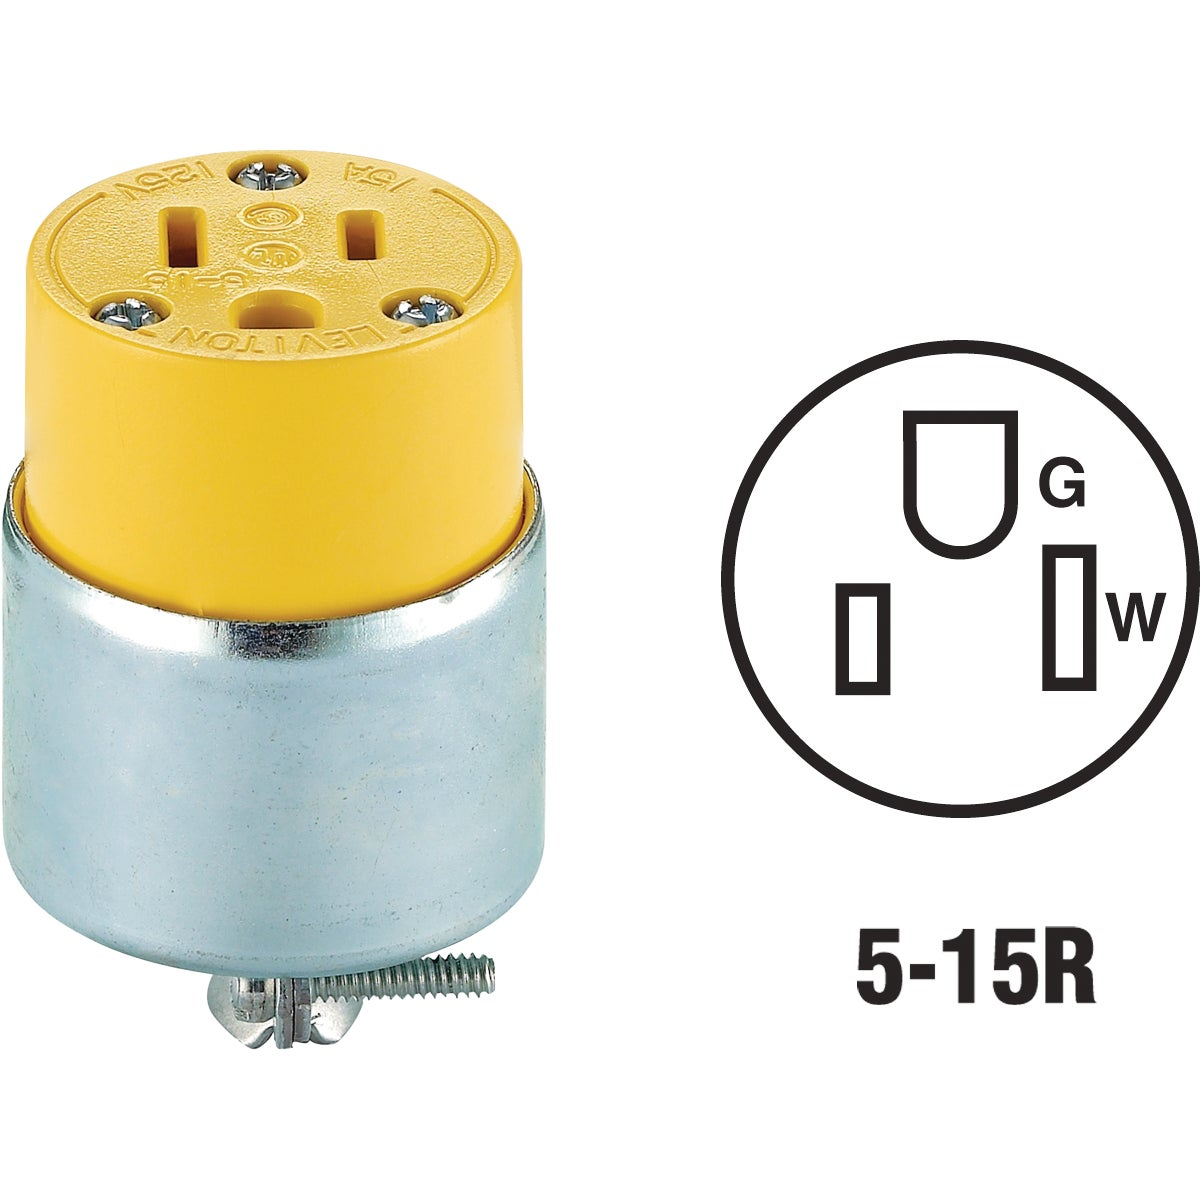 YEL ARMORED CONNECTOR - 875515CA by Leviton Mfg Co